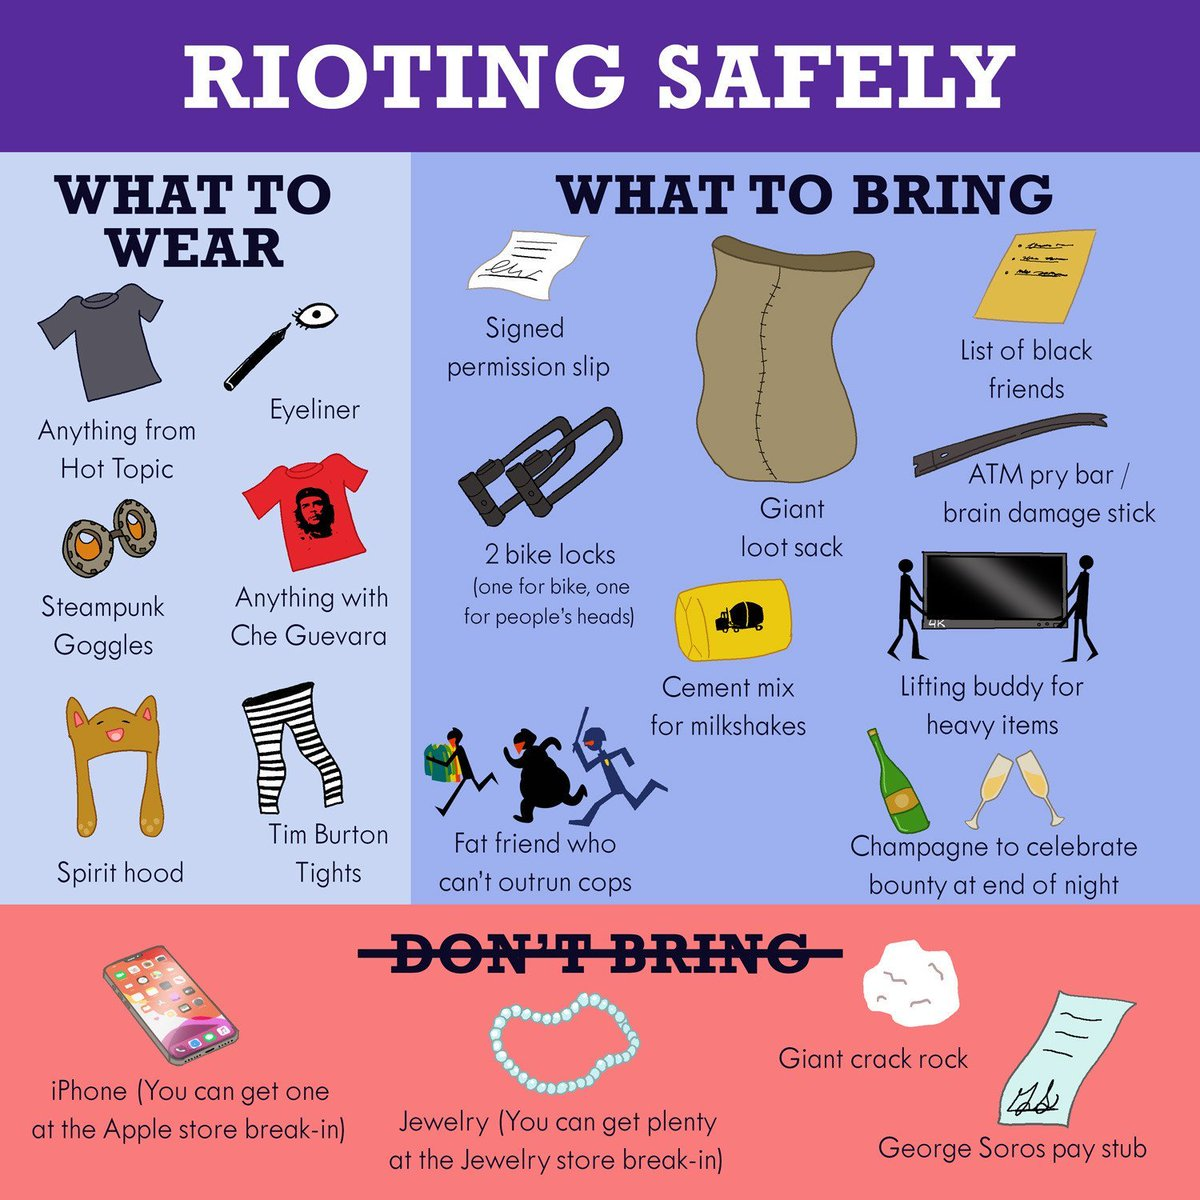 Remember 👏 to 👏 riot 👏 safely 👏